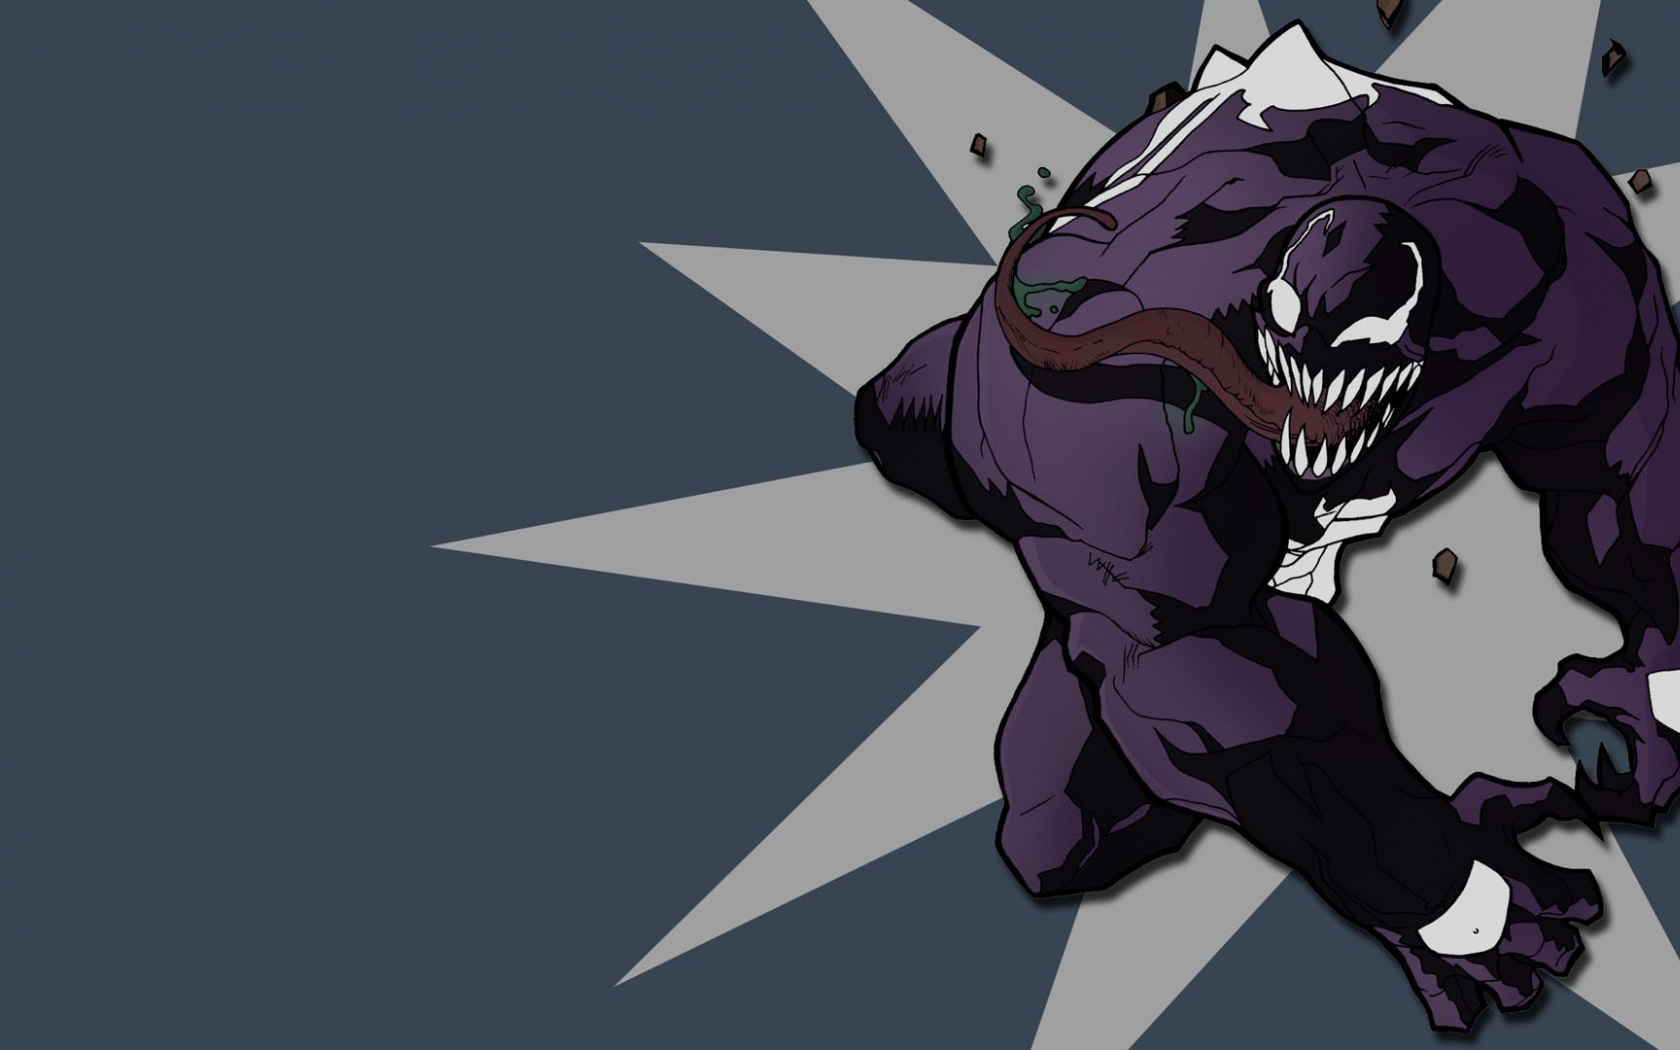 Free Download Venom Hd Wallpaper Fullhdwpp Full Hd Wallpapers